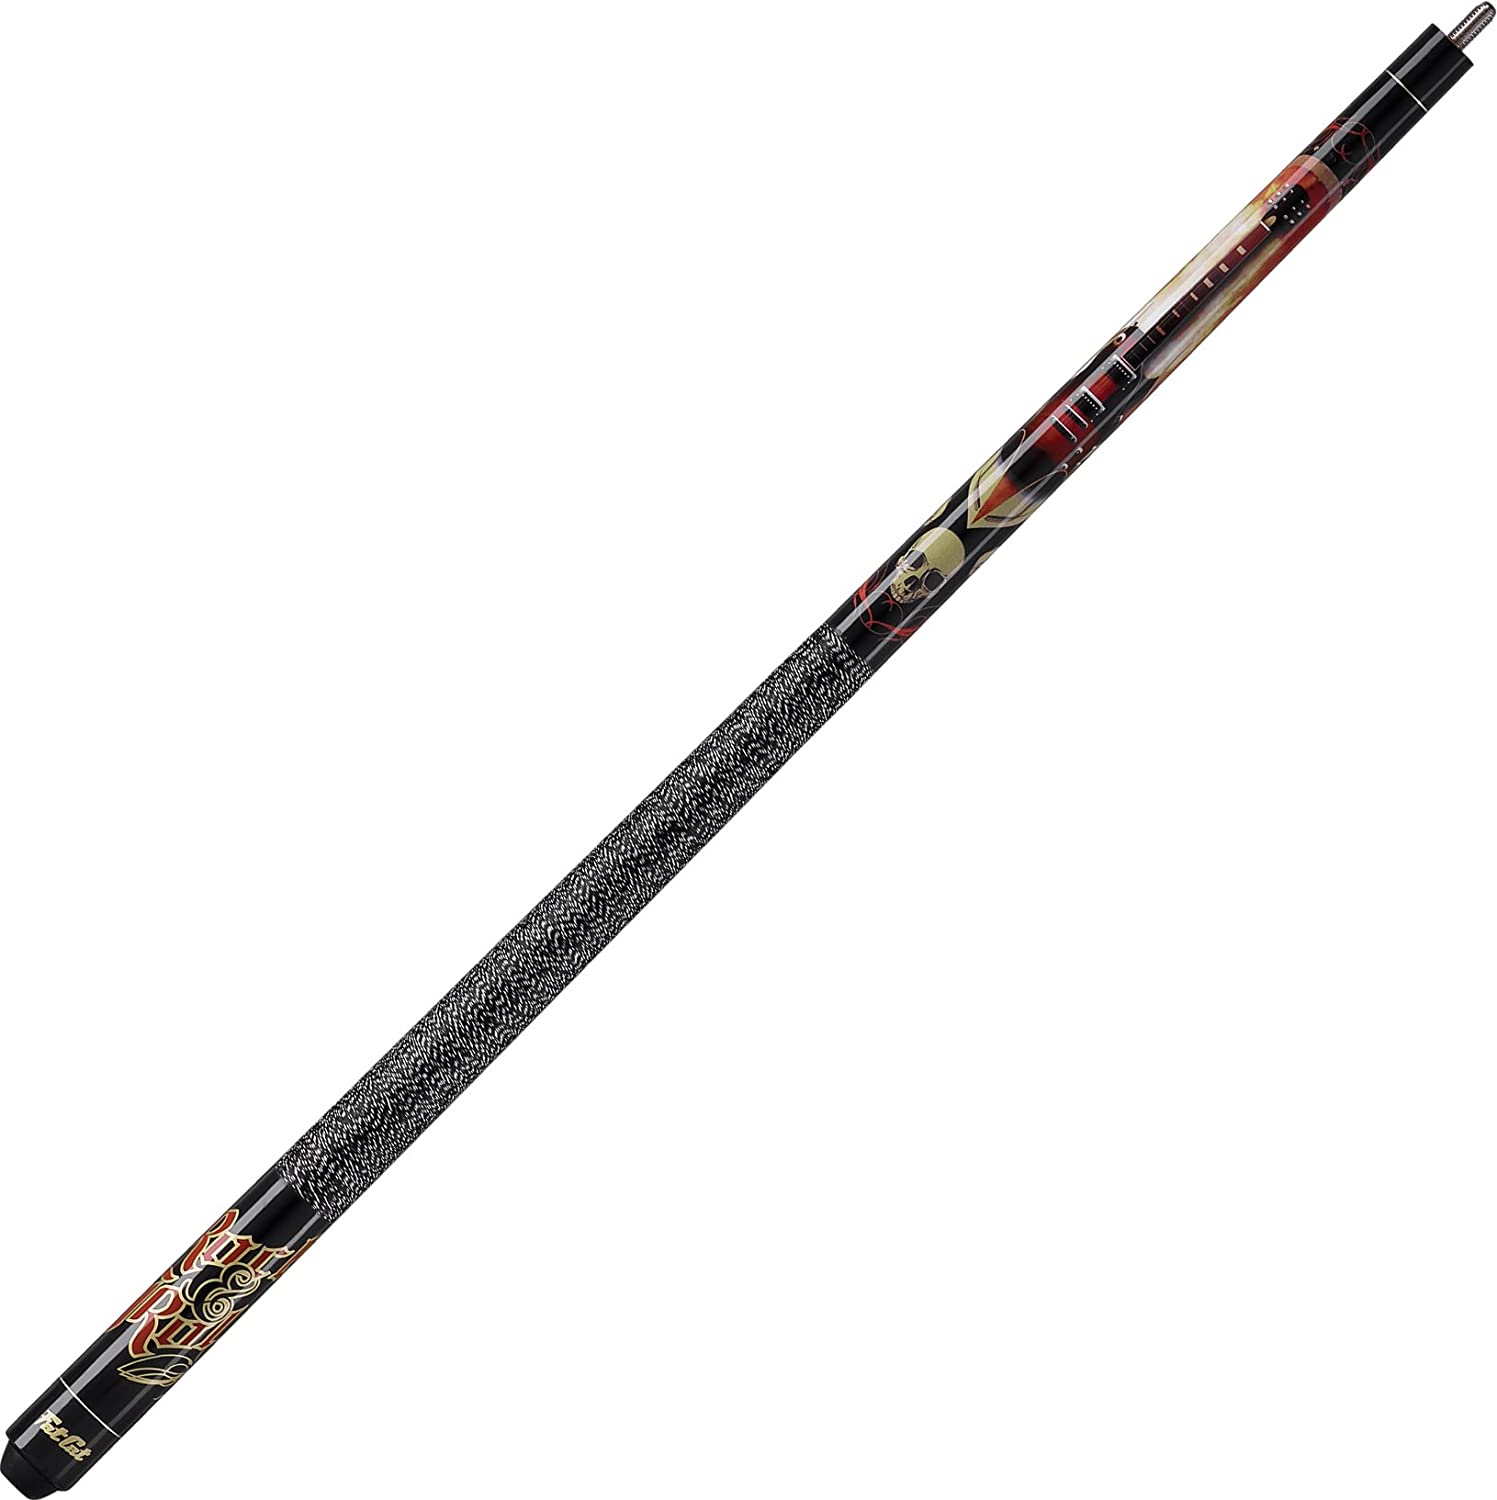 Fat Cat Edge 57 2-Piece Billiard/Pool Cue, Rock & Roll, 19 Ounce 50-8113